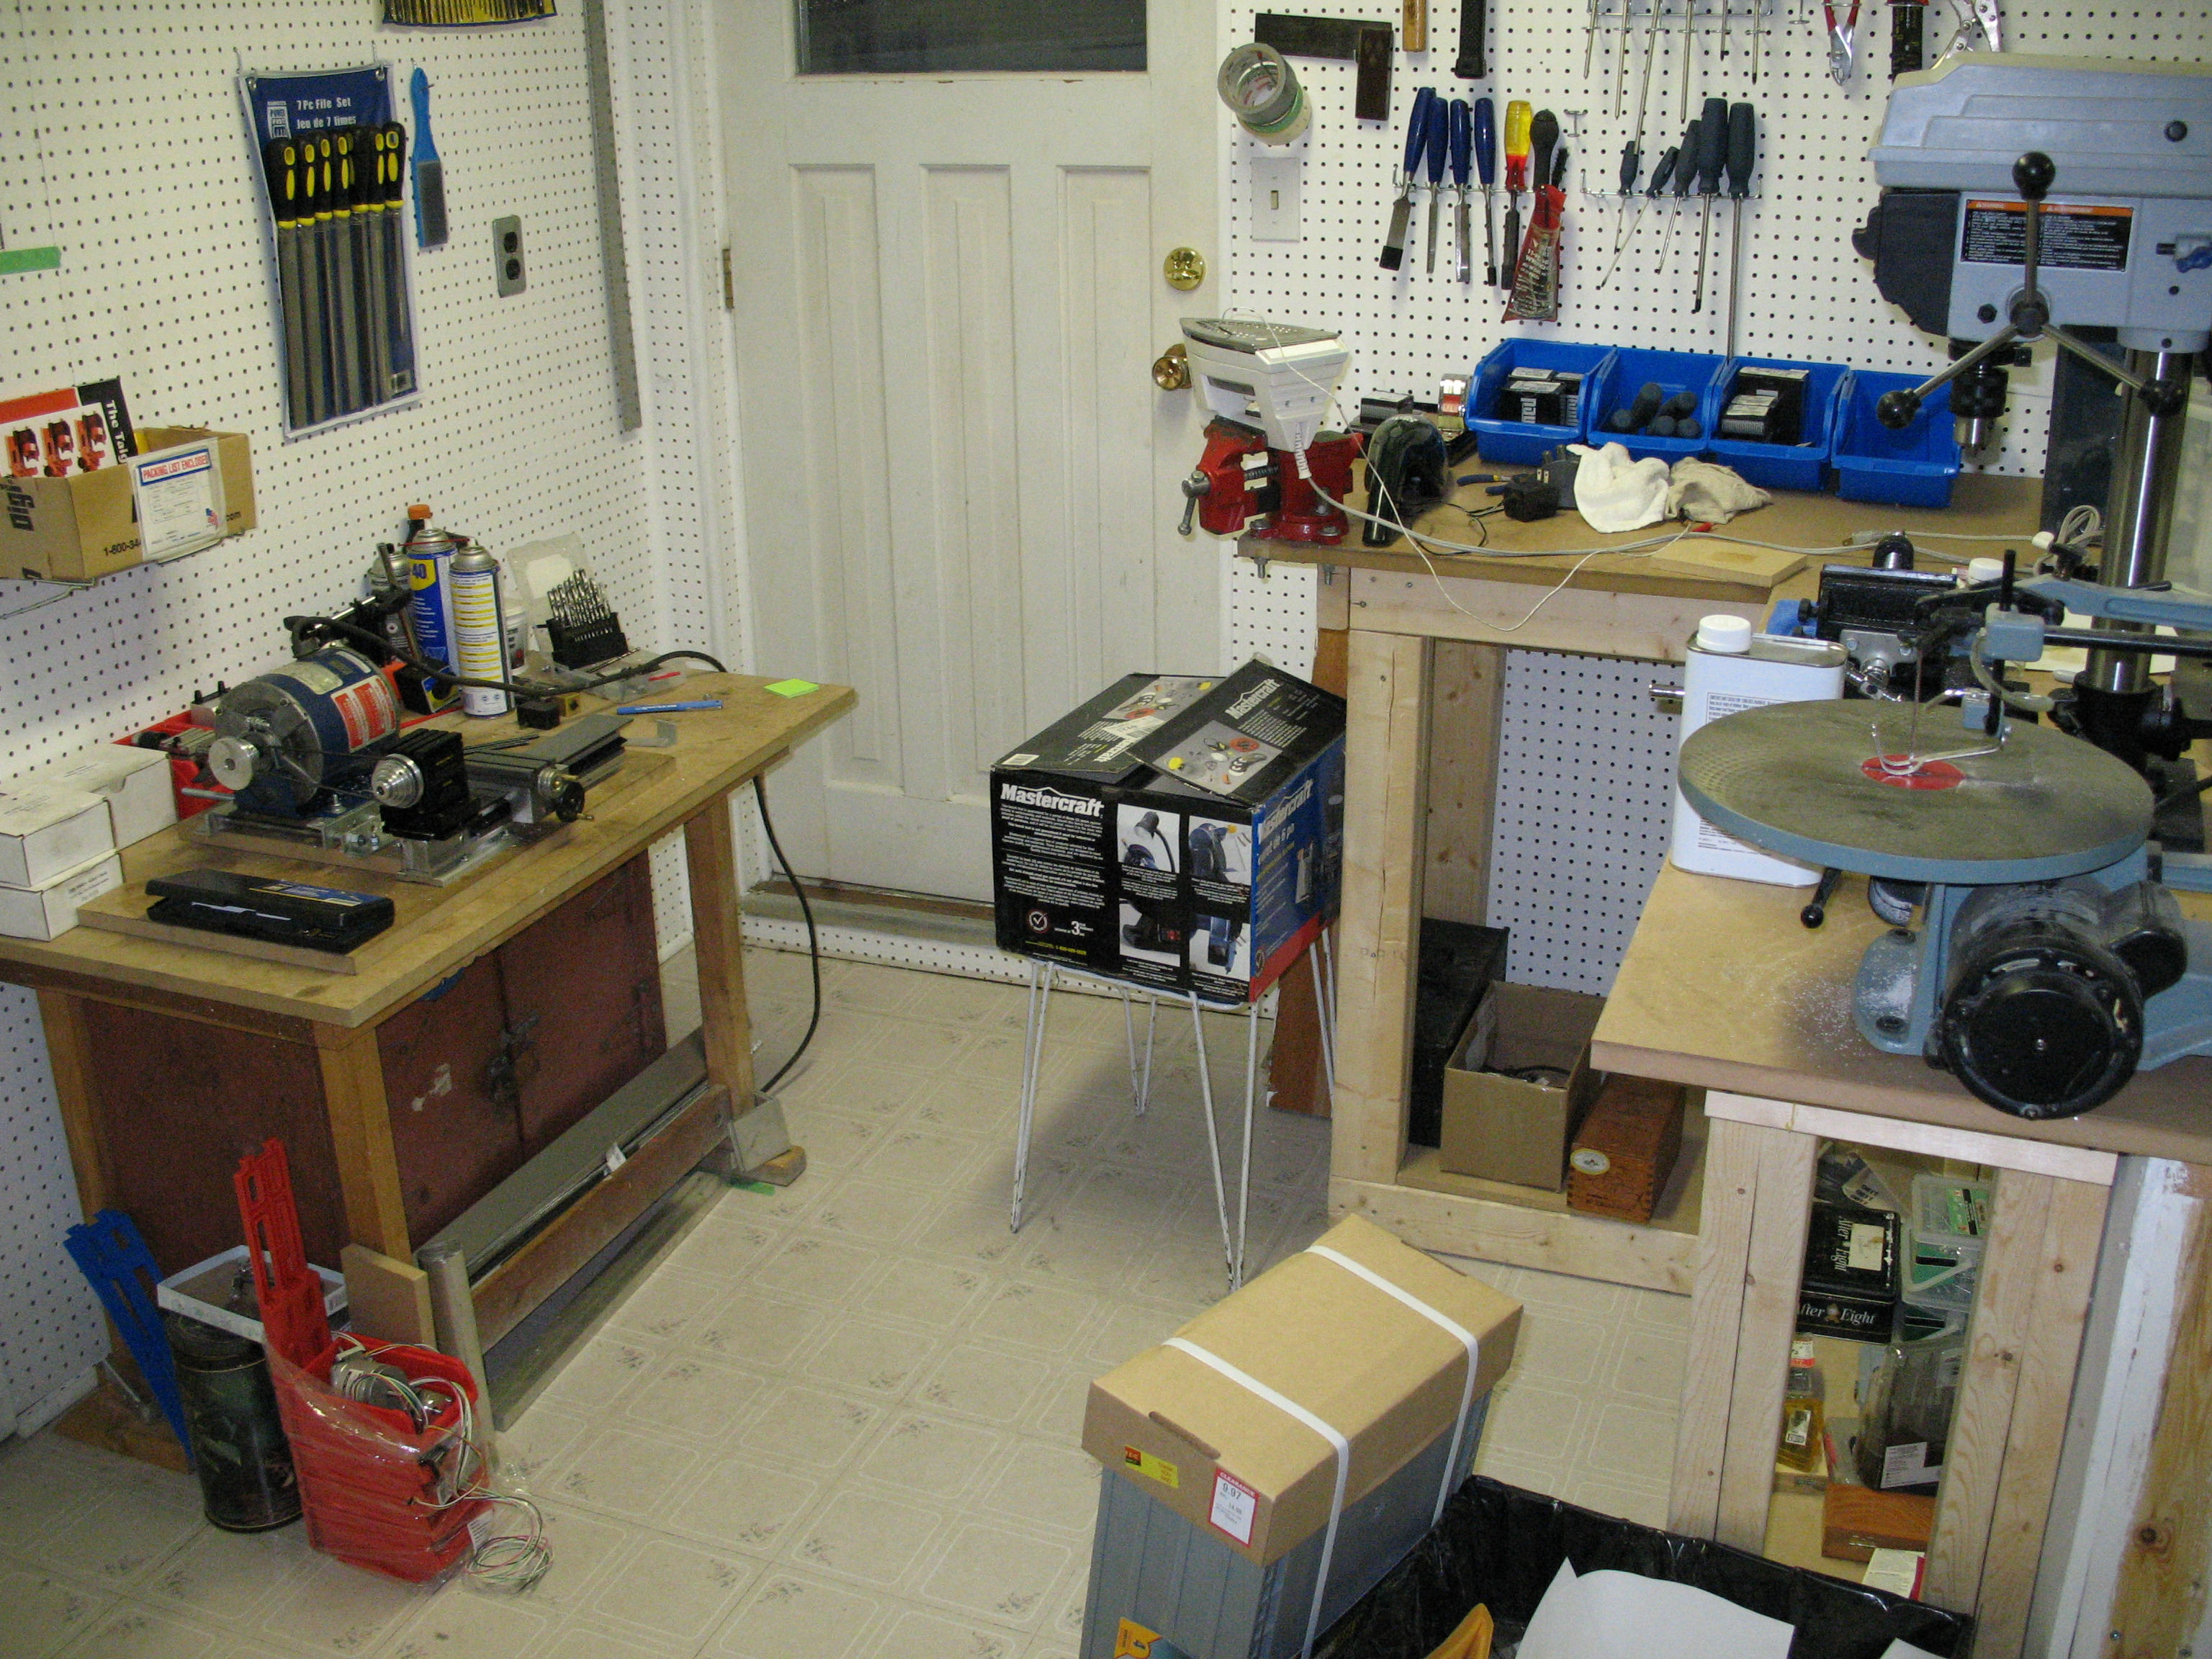 File:Taig metal lathe, Drill press and Workbench.jpg - Wikimedia ...